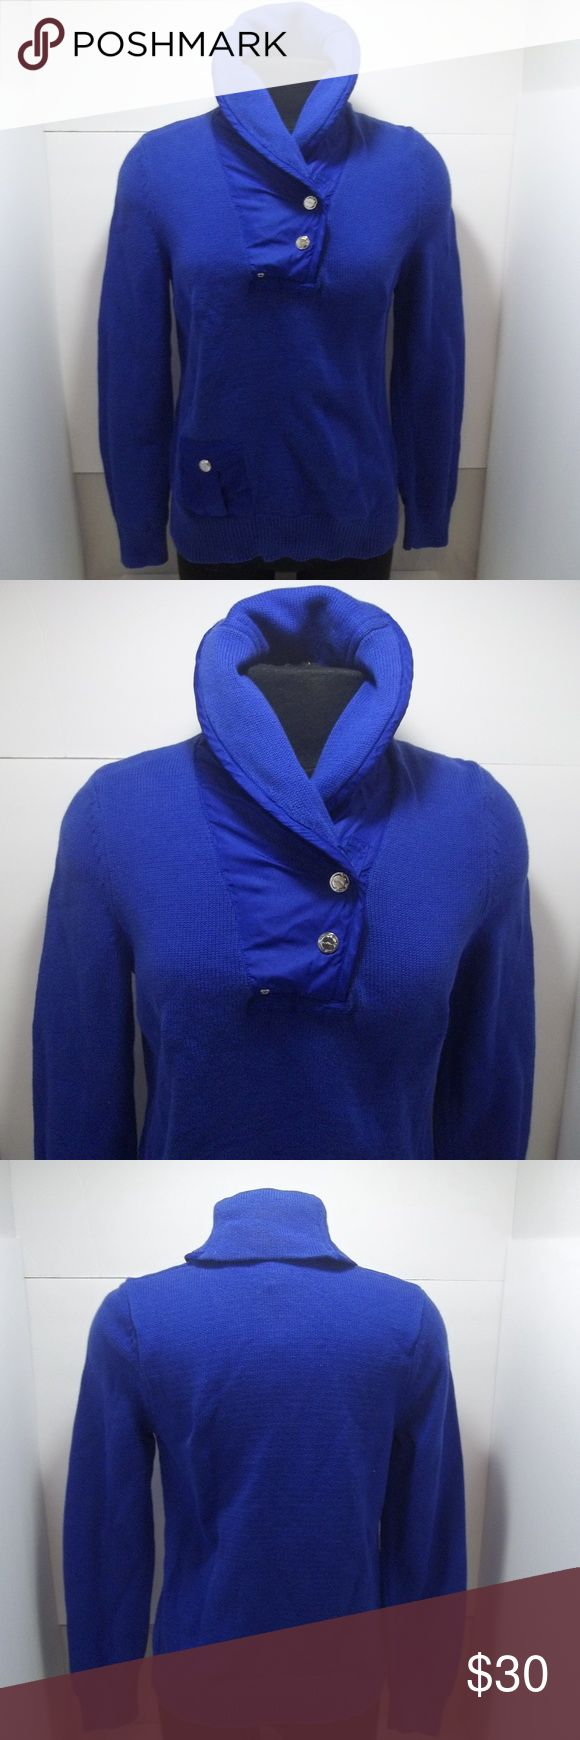 Lauren Ralph Lauren womens windbreaker neck 2B Pre-owned Lauren Ralp Lauren 2 button quarter neck sweater with a windbreaker like material on the neck area and on the pockets of the sweater!  In excellent condition with no holes or stains! Lauren Ralph Lauren Sweaters Cowl & Turtlenecks